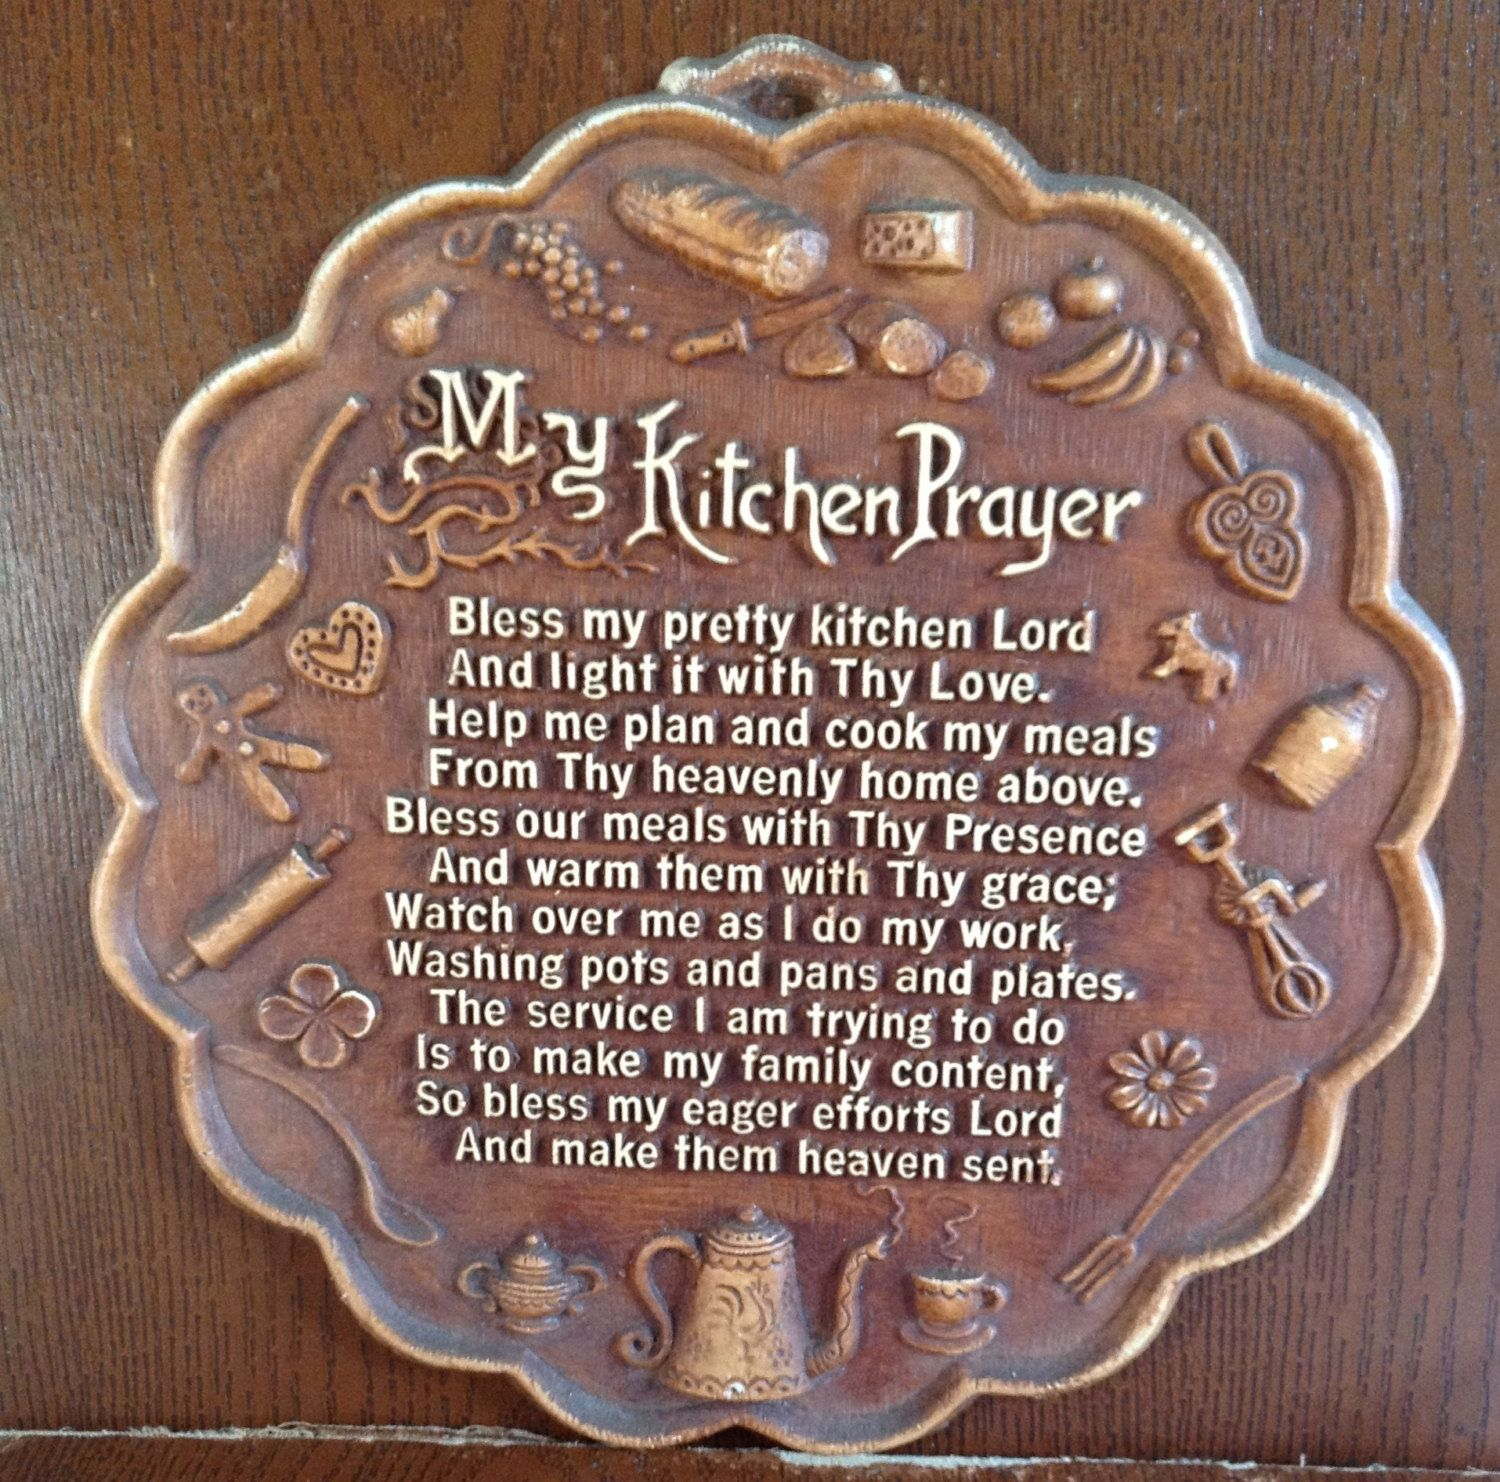 Kitchen Wall Plaques: Vintage - MY KITCHEN PRAYER - Plaque, Wall Hanging